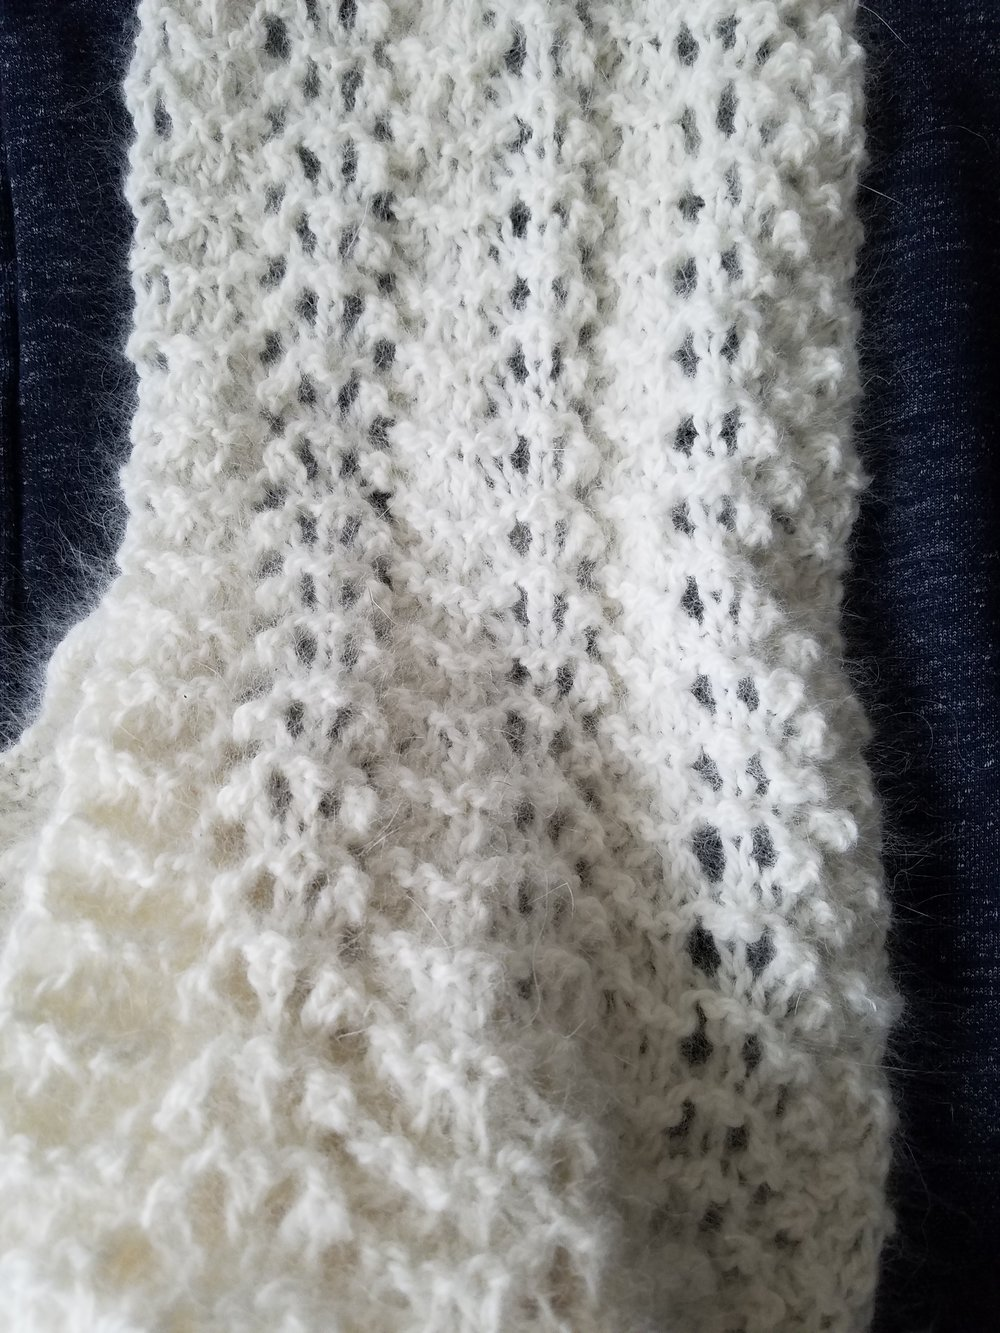 - HAND-KNIT SCARF - made using The Rosefield 50% angora/50% merino yarn